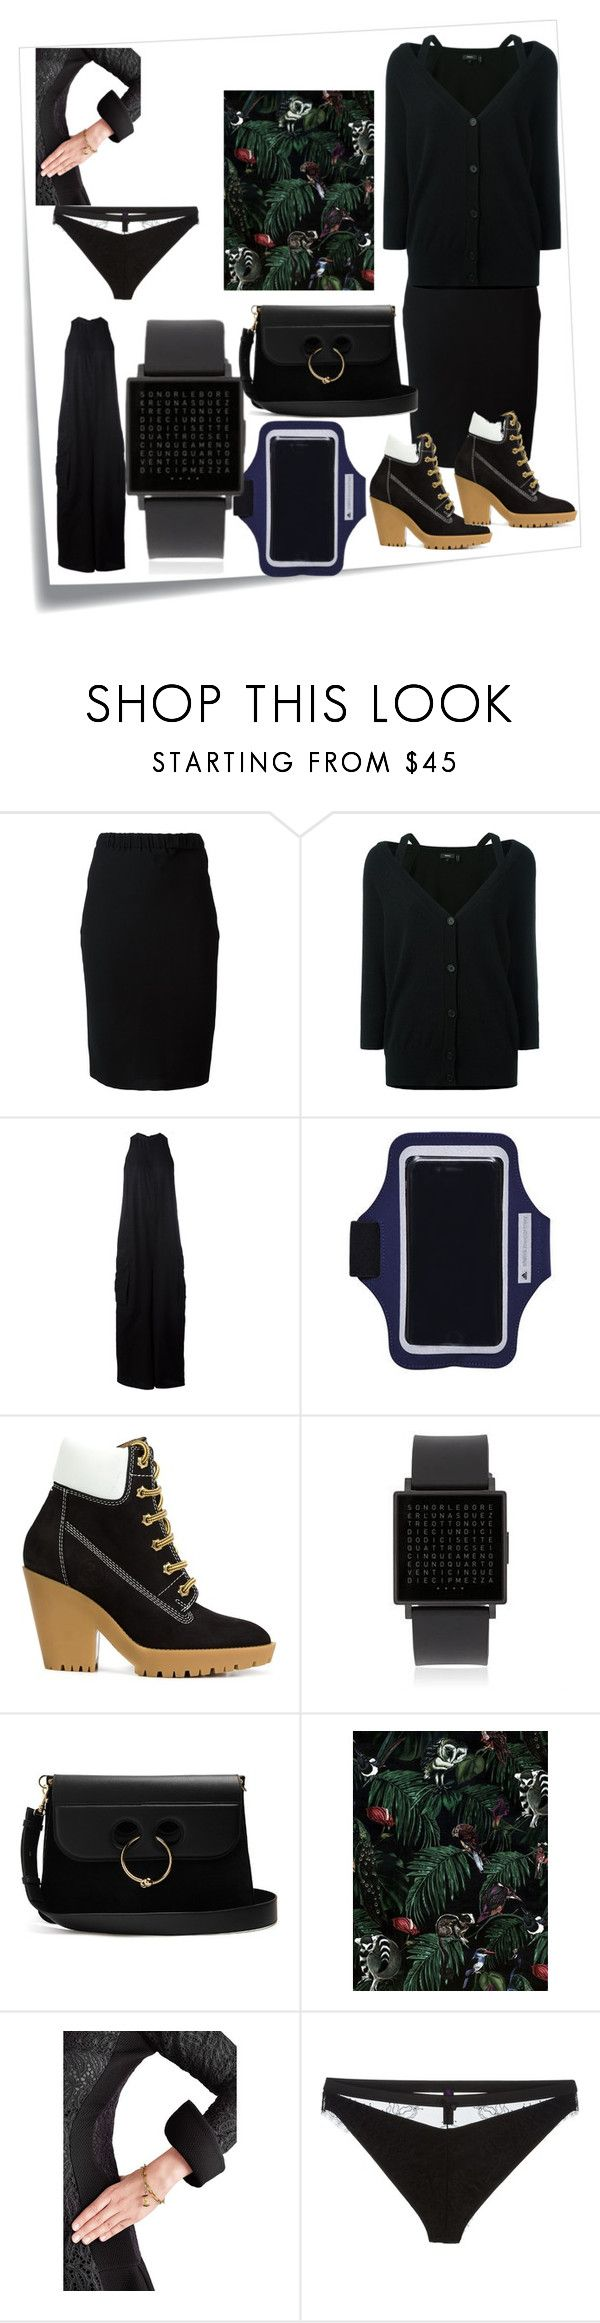 """""""nice sale offer"""" by denisee-denisee ❤ liked on Polyvore featuring Post-It, A.F. Vandevorst, Theory, Rick Owens, adidas, Maison Margiela, QLOCKTWO, J.W. Anderson, Witch & Watchman and Aurélie Bidermann"""